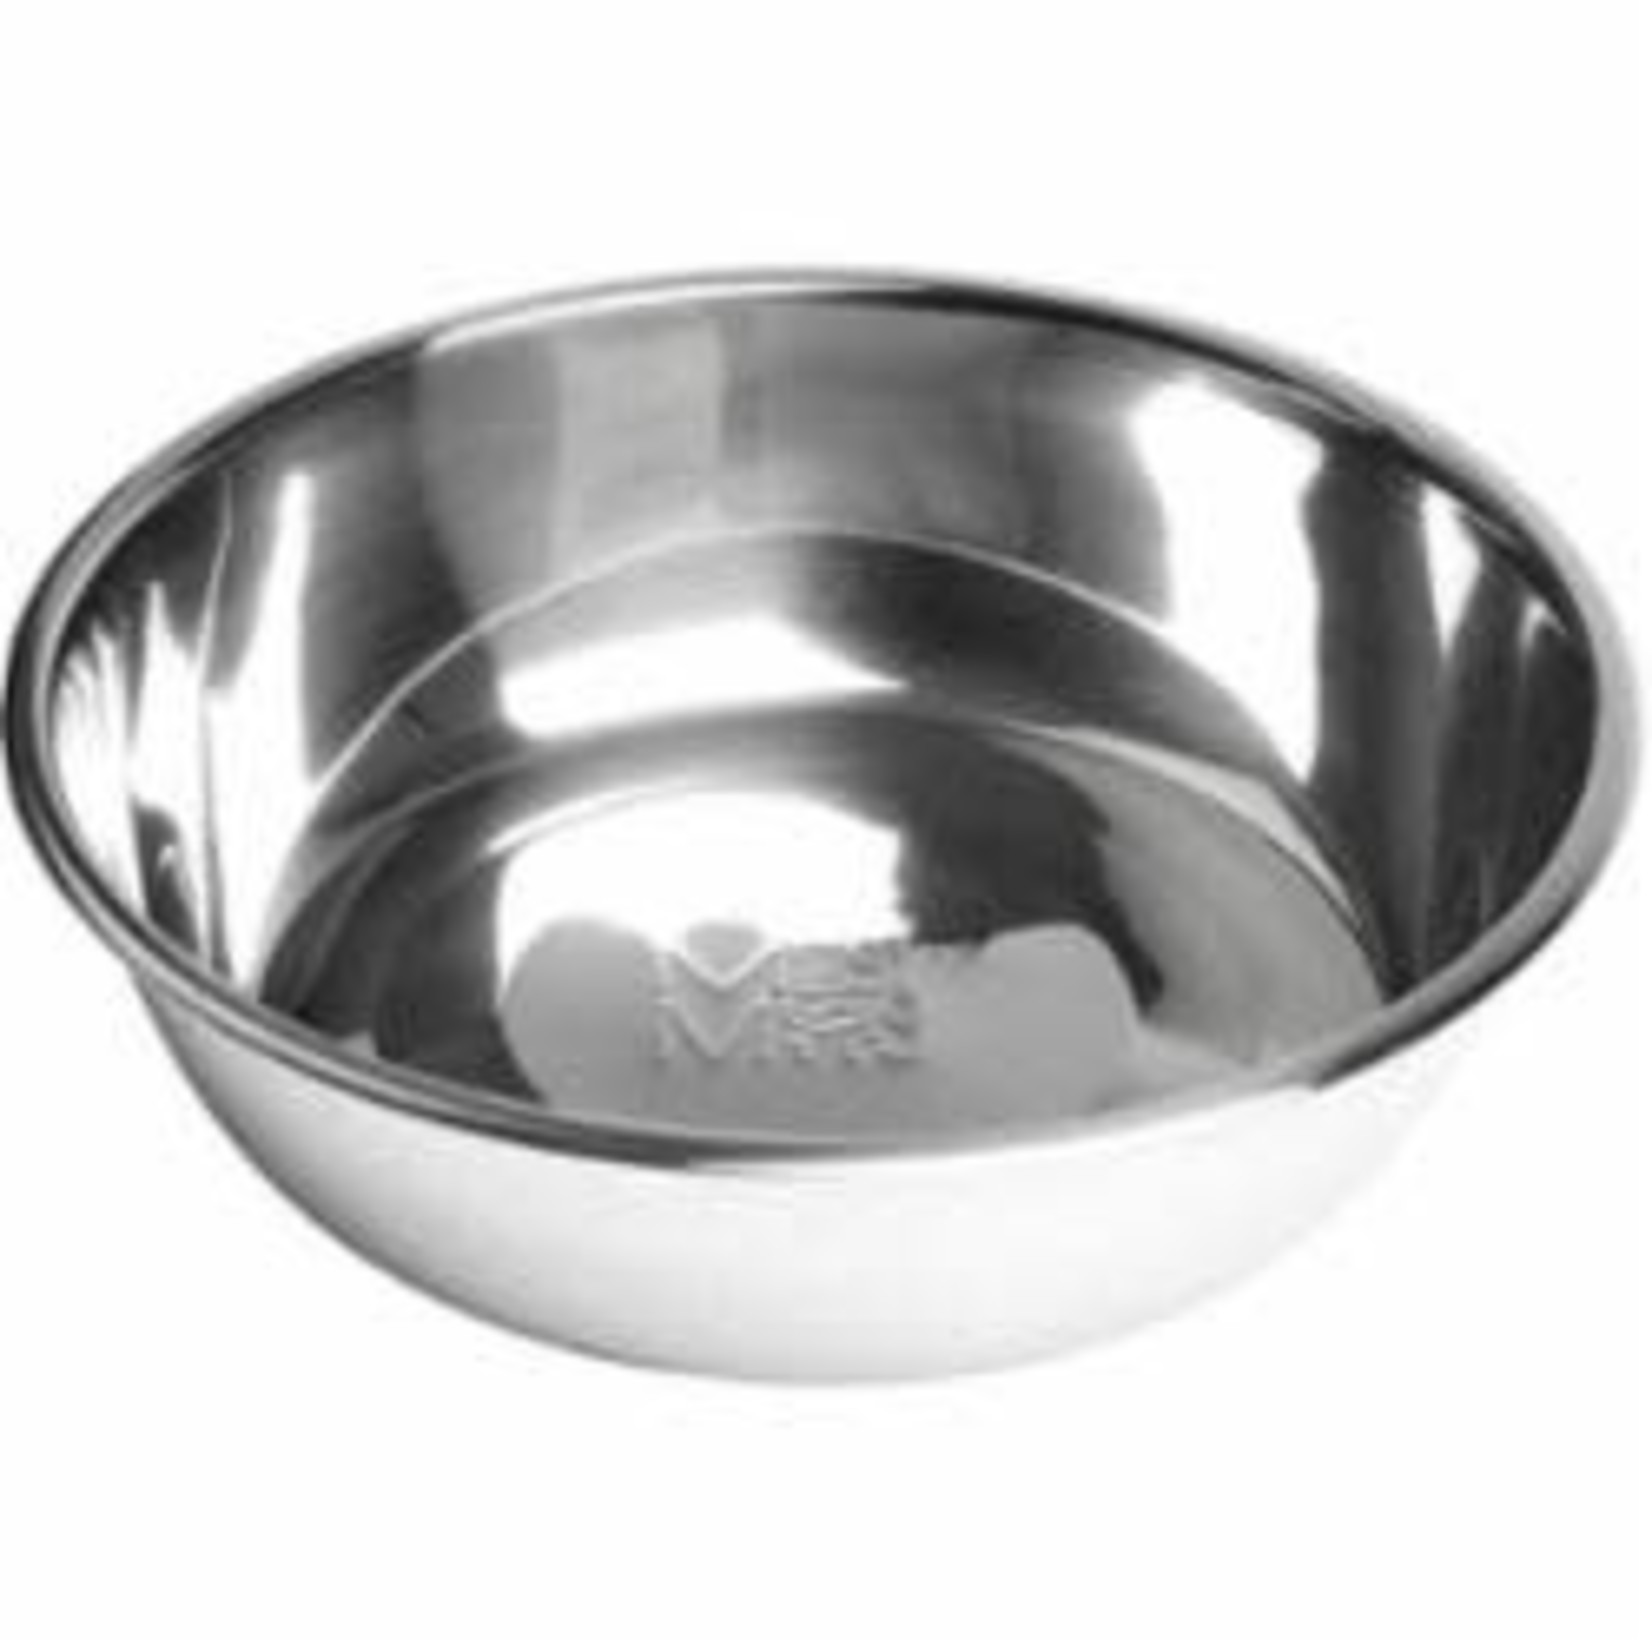 Messy Mutts Messy Mutts Stainless Steel Dog Bowl 3 CUP